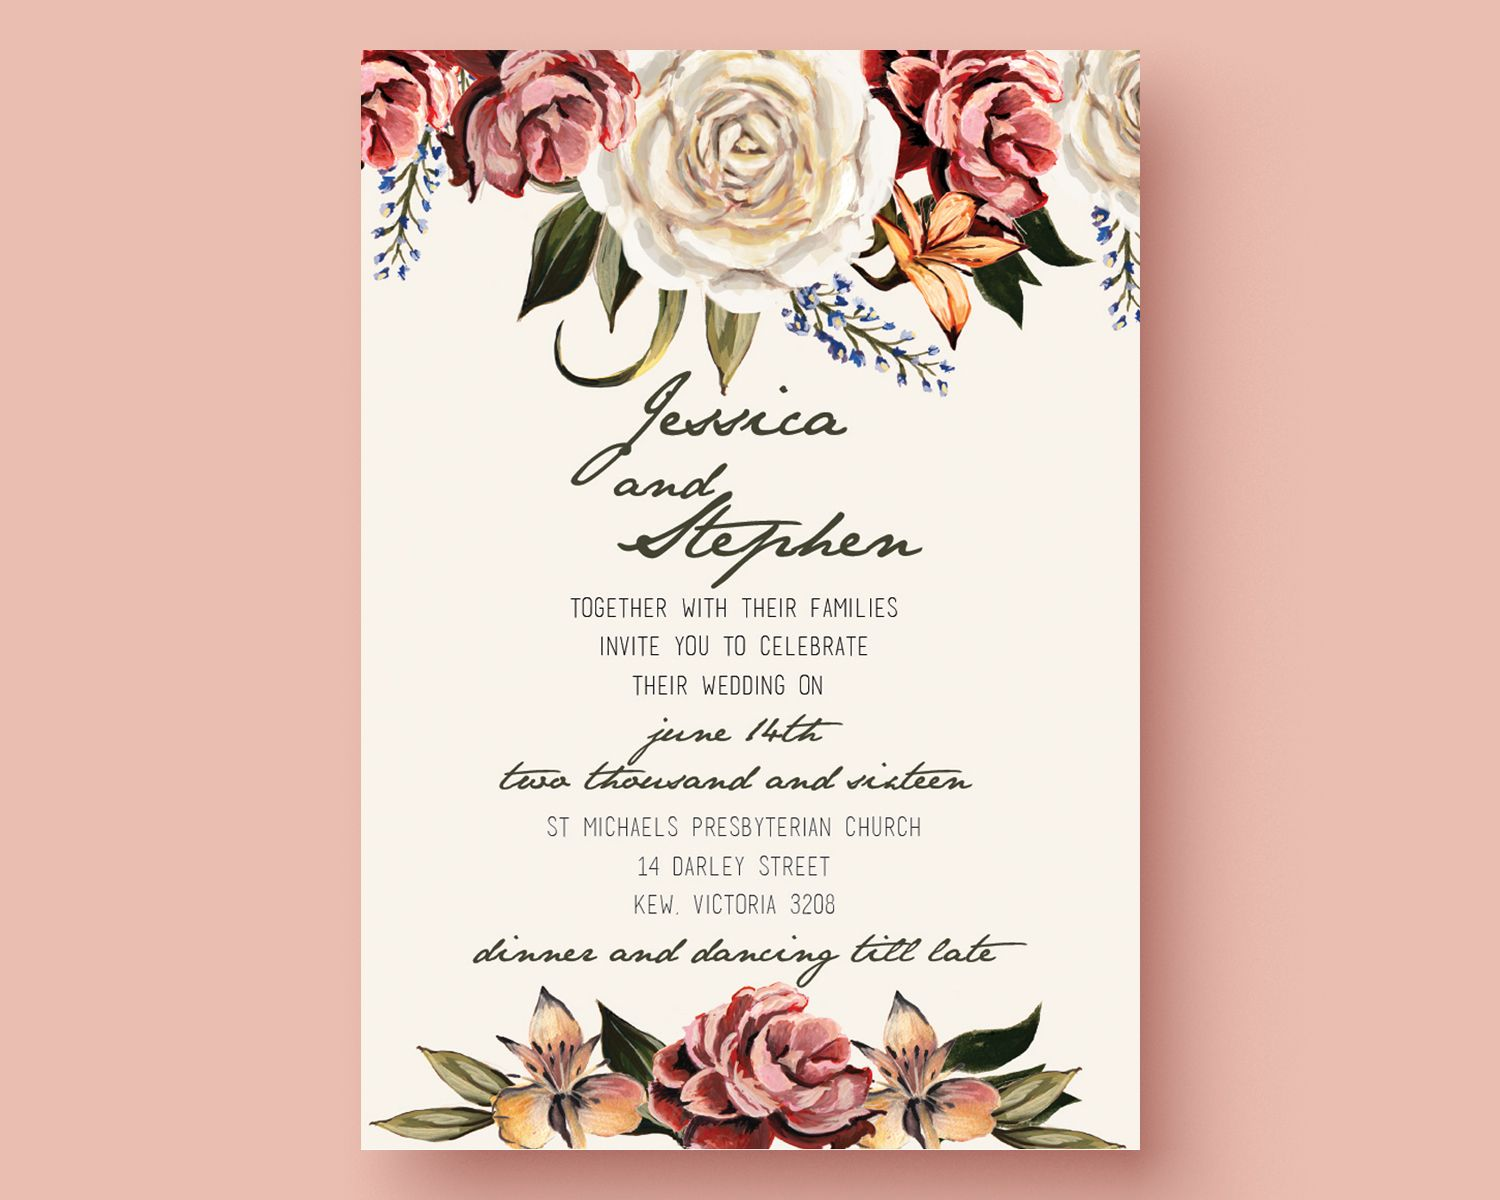 Get The Template Free Download This Is An Adobe Illustrator File - Make your own wedding invitations free templates